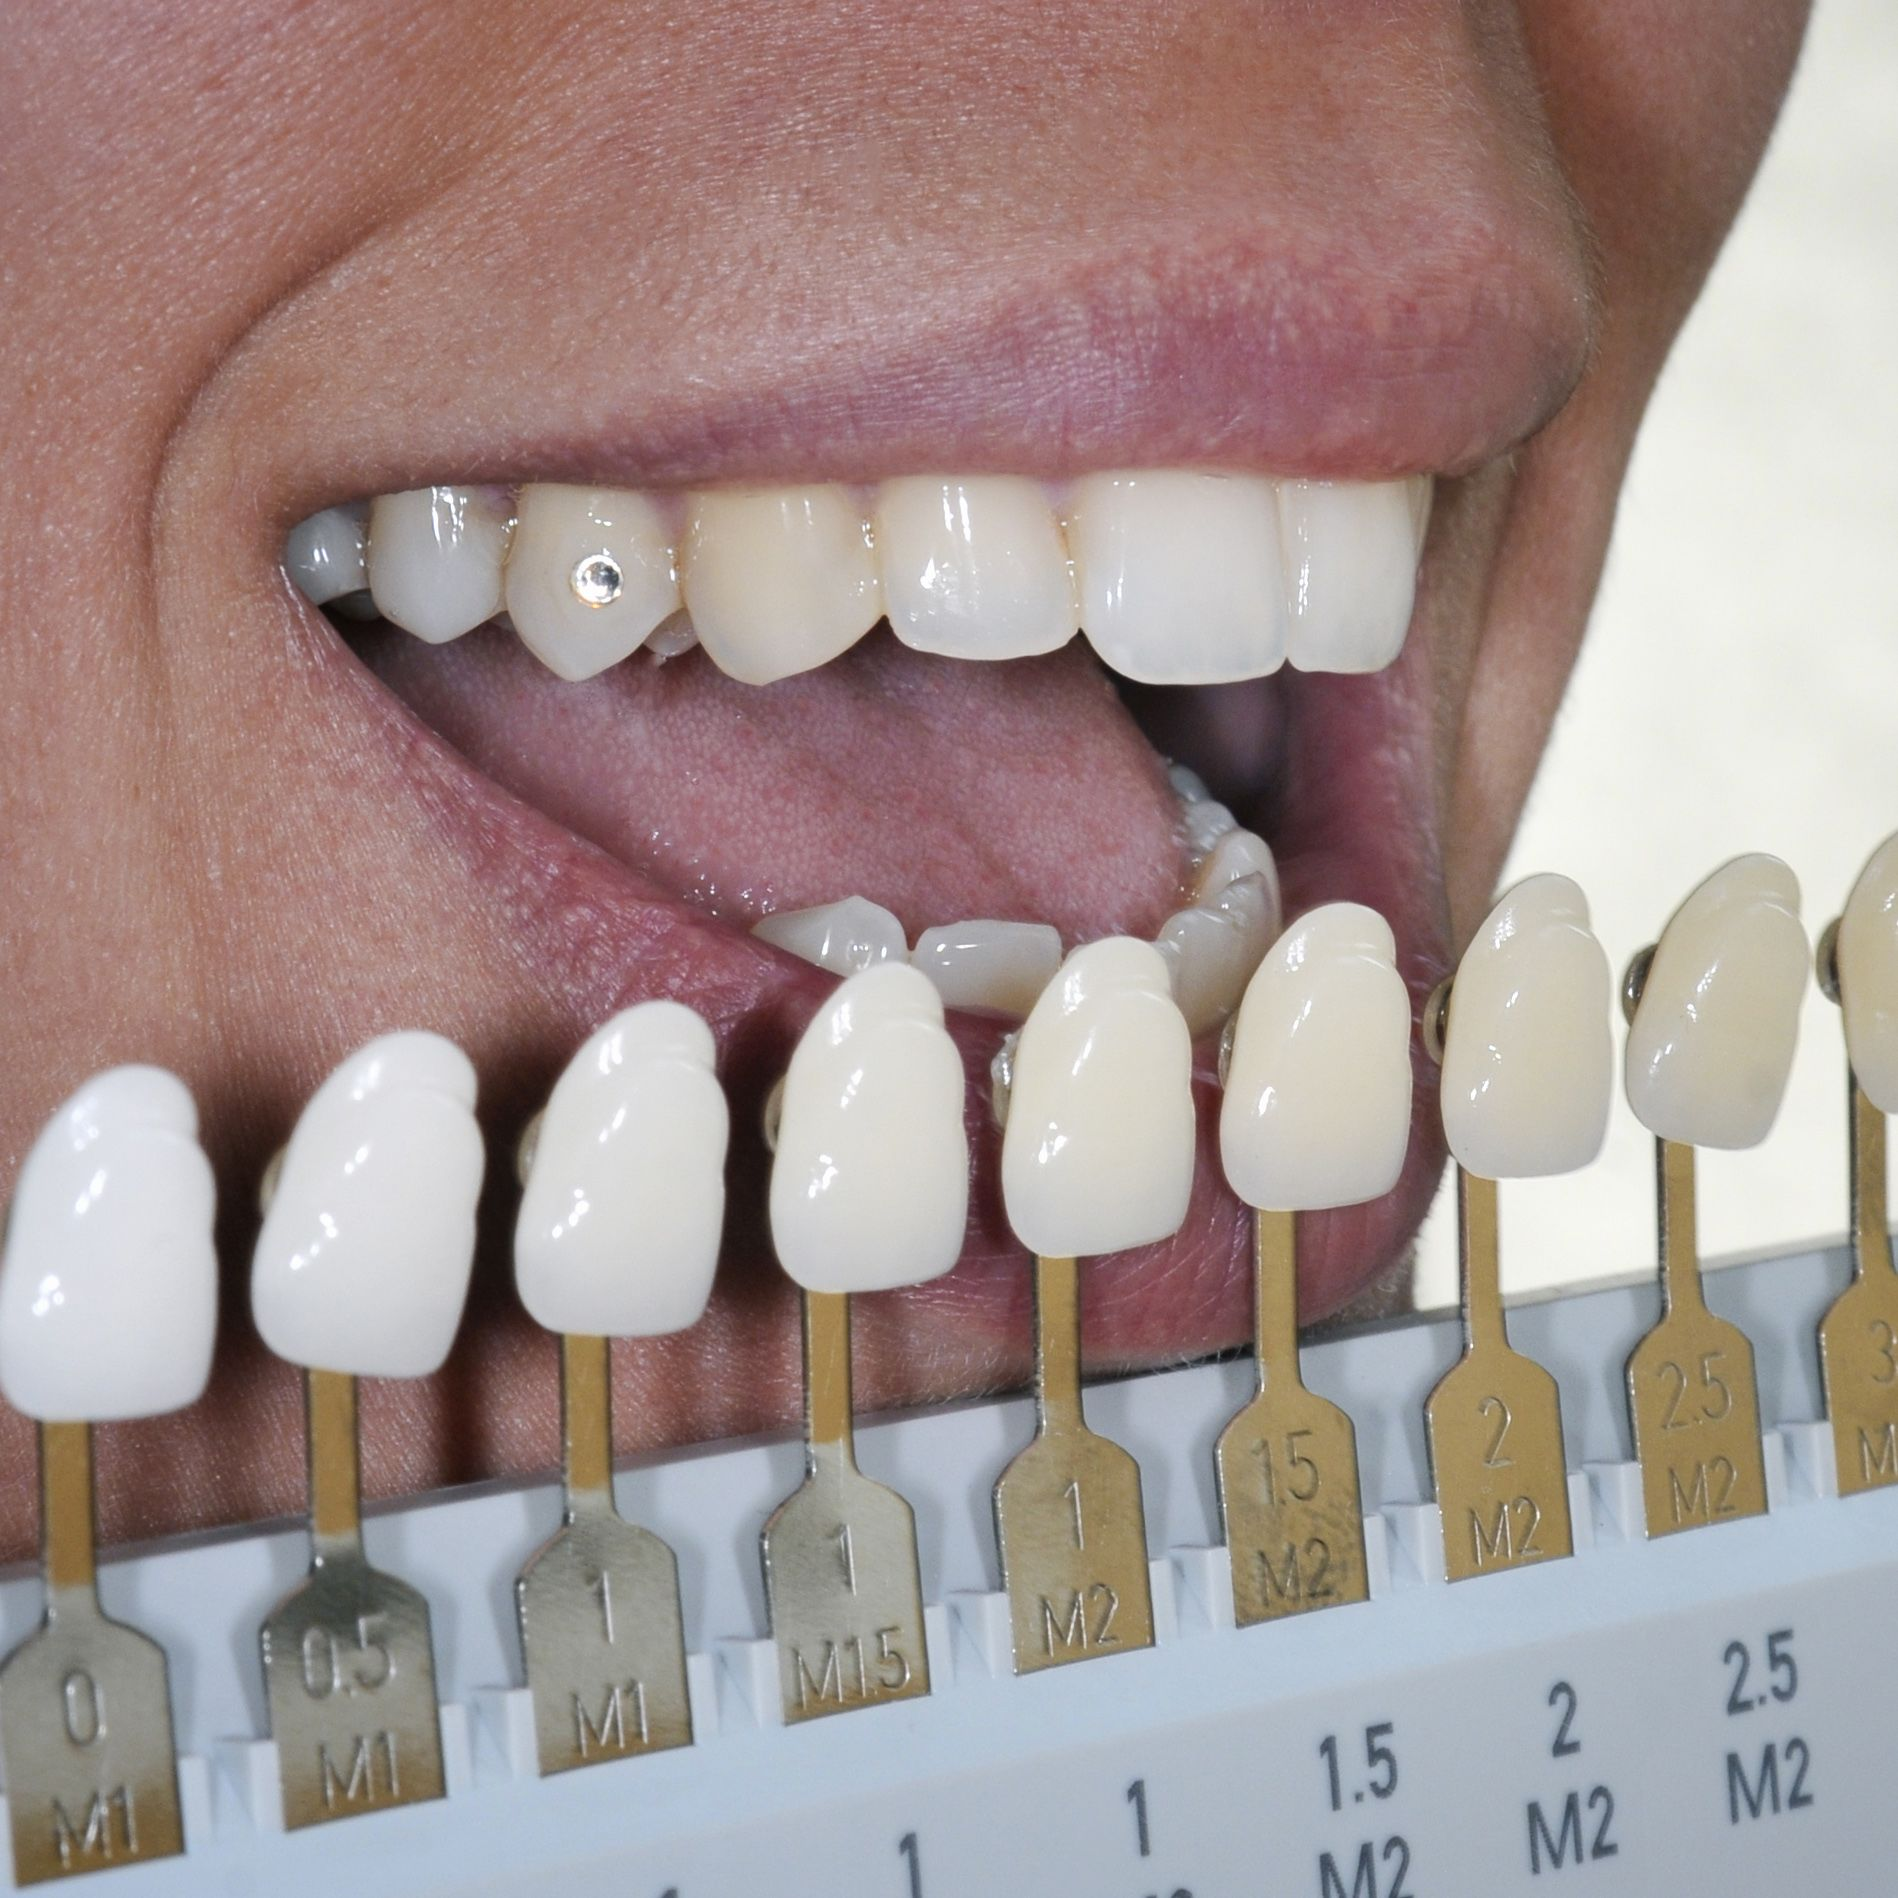 Comparing shades of tooth discoloration